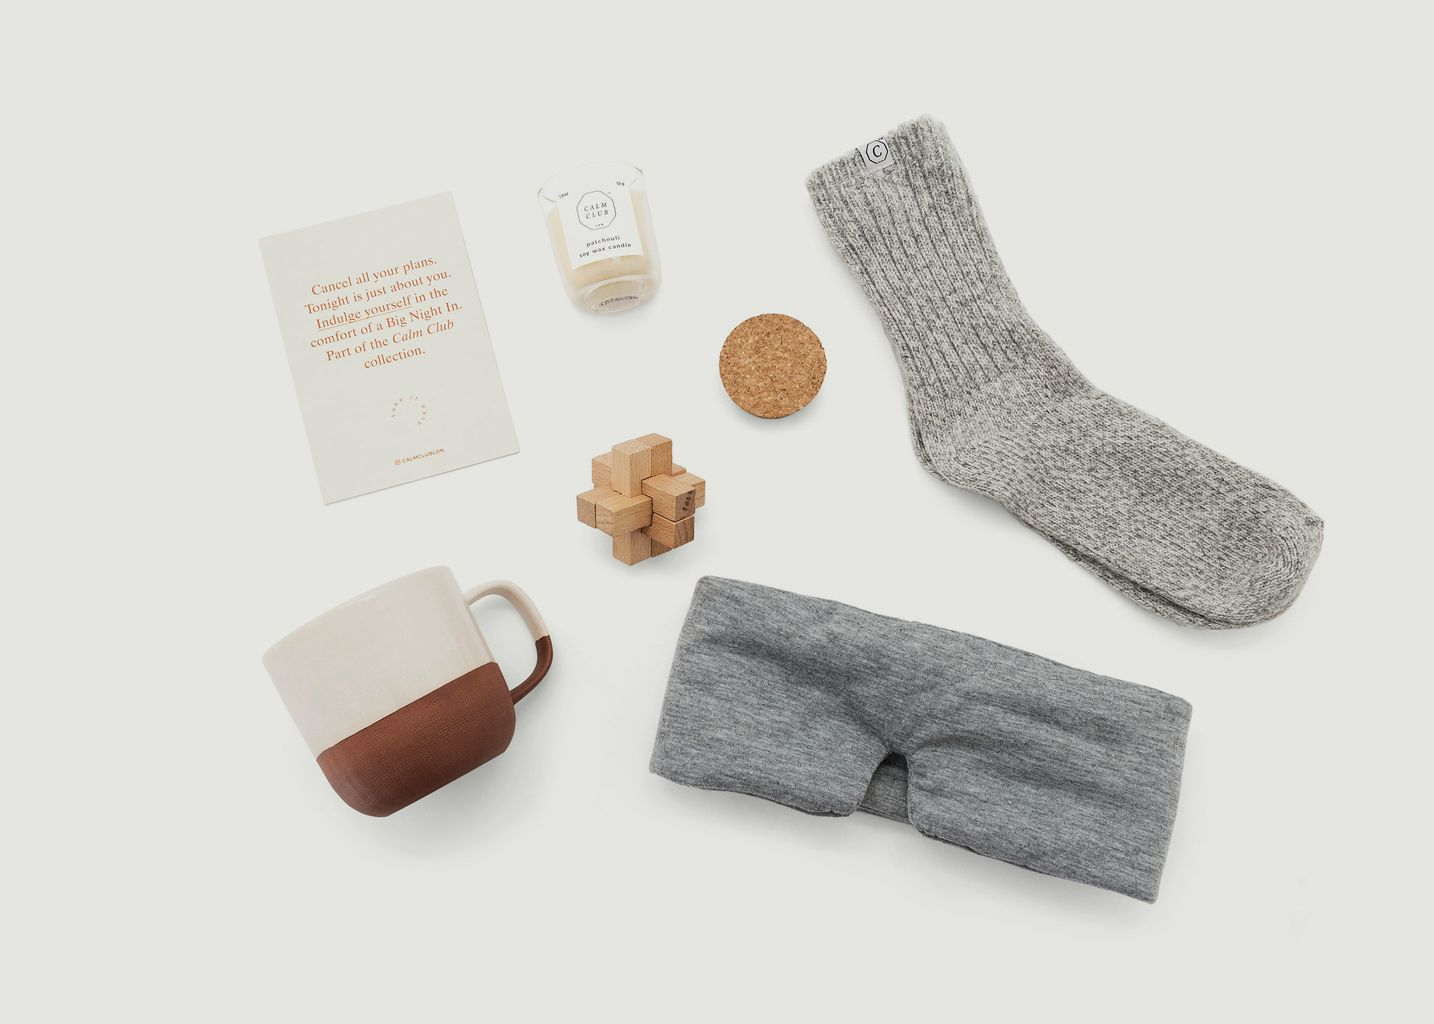 Kit Soirée Cosy - Calm Club by Luckies